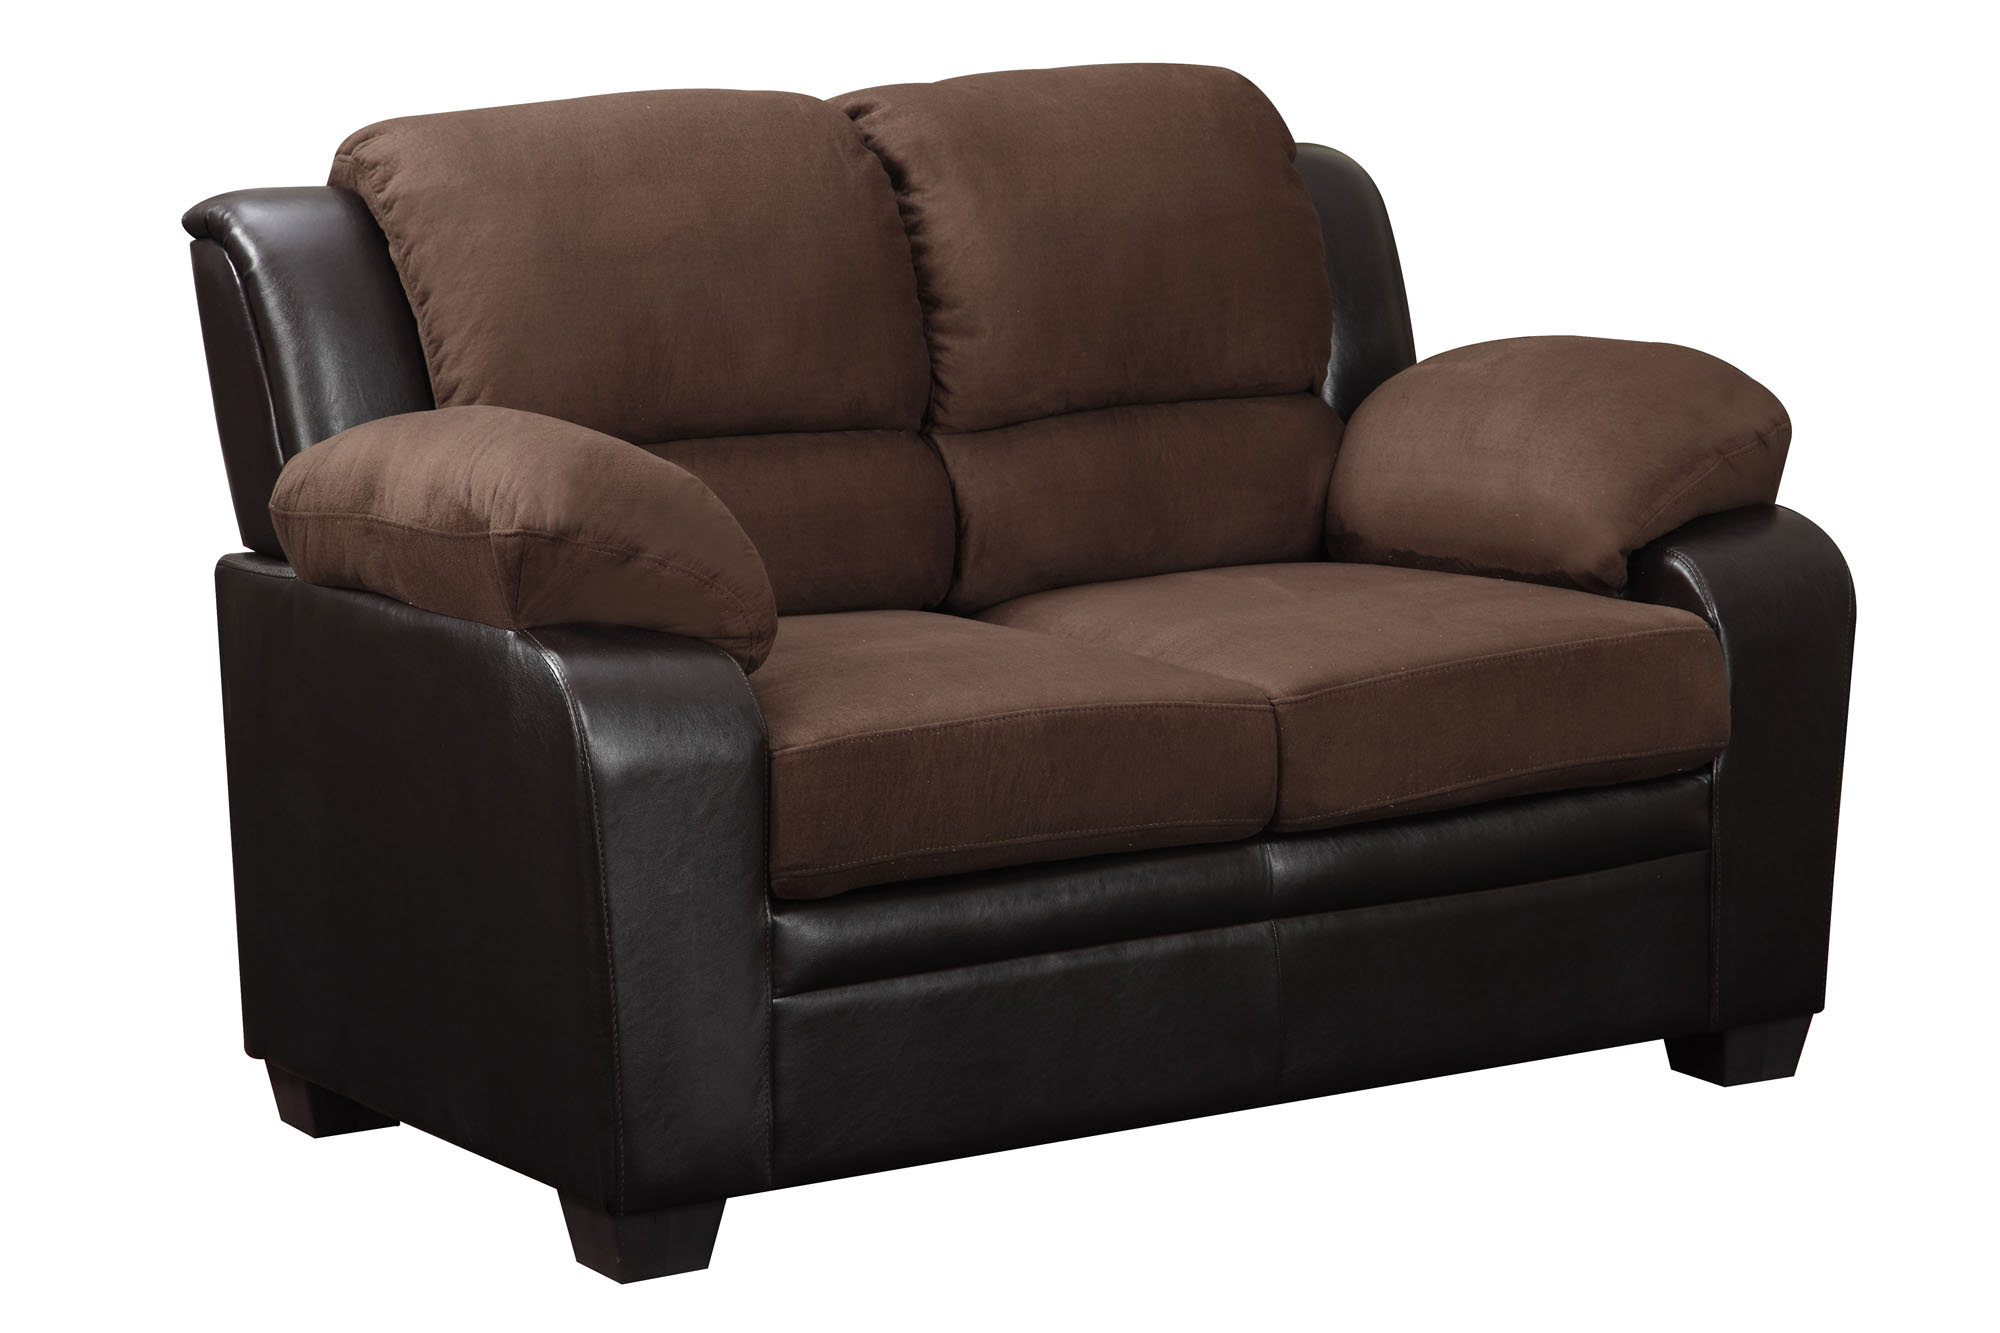 leather sofa furniture stores nyc fabric designs u880018kd chocolate microfiber loveseat by global